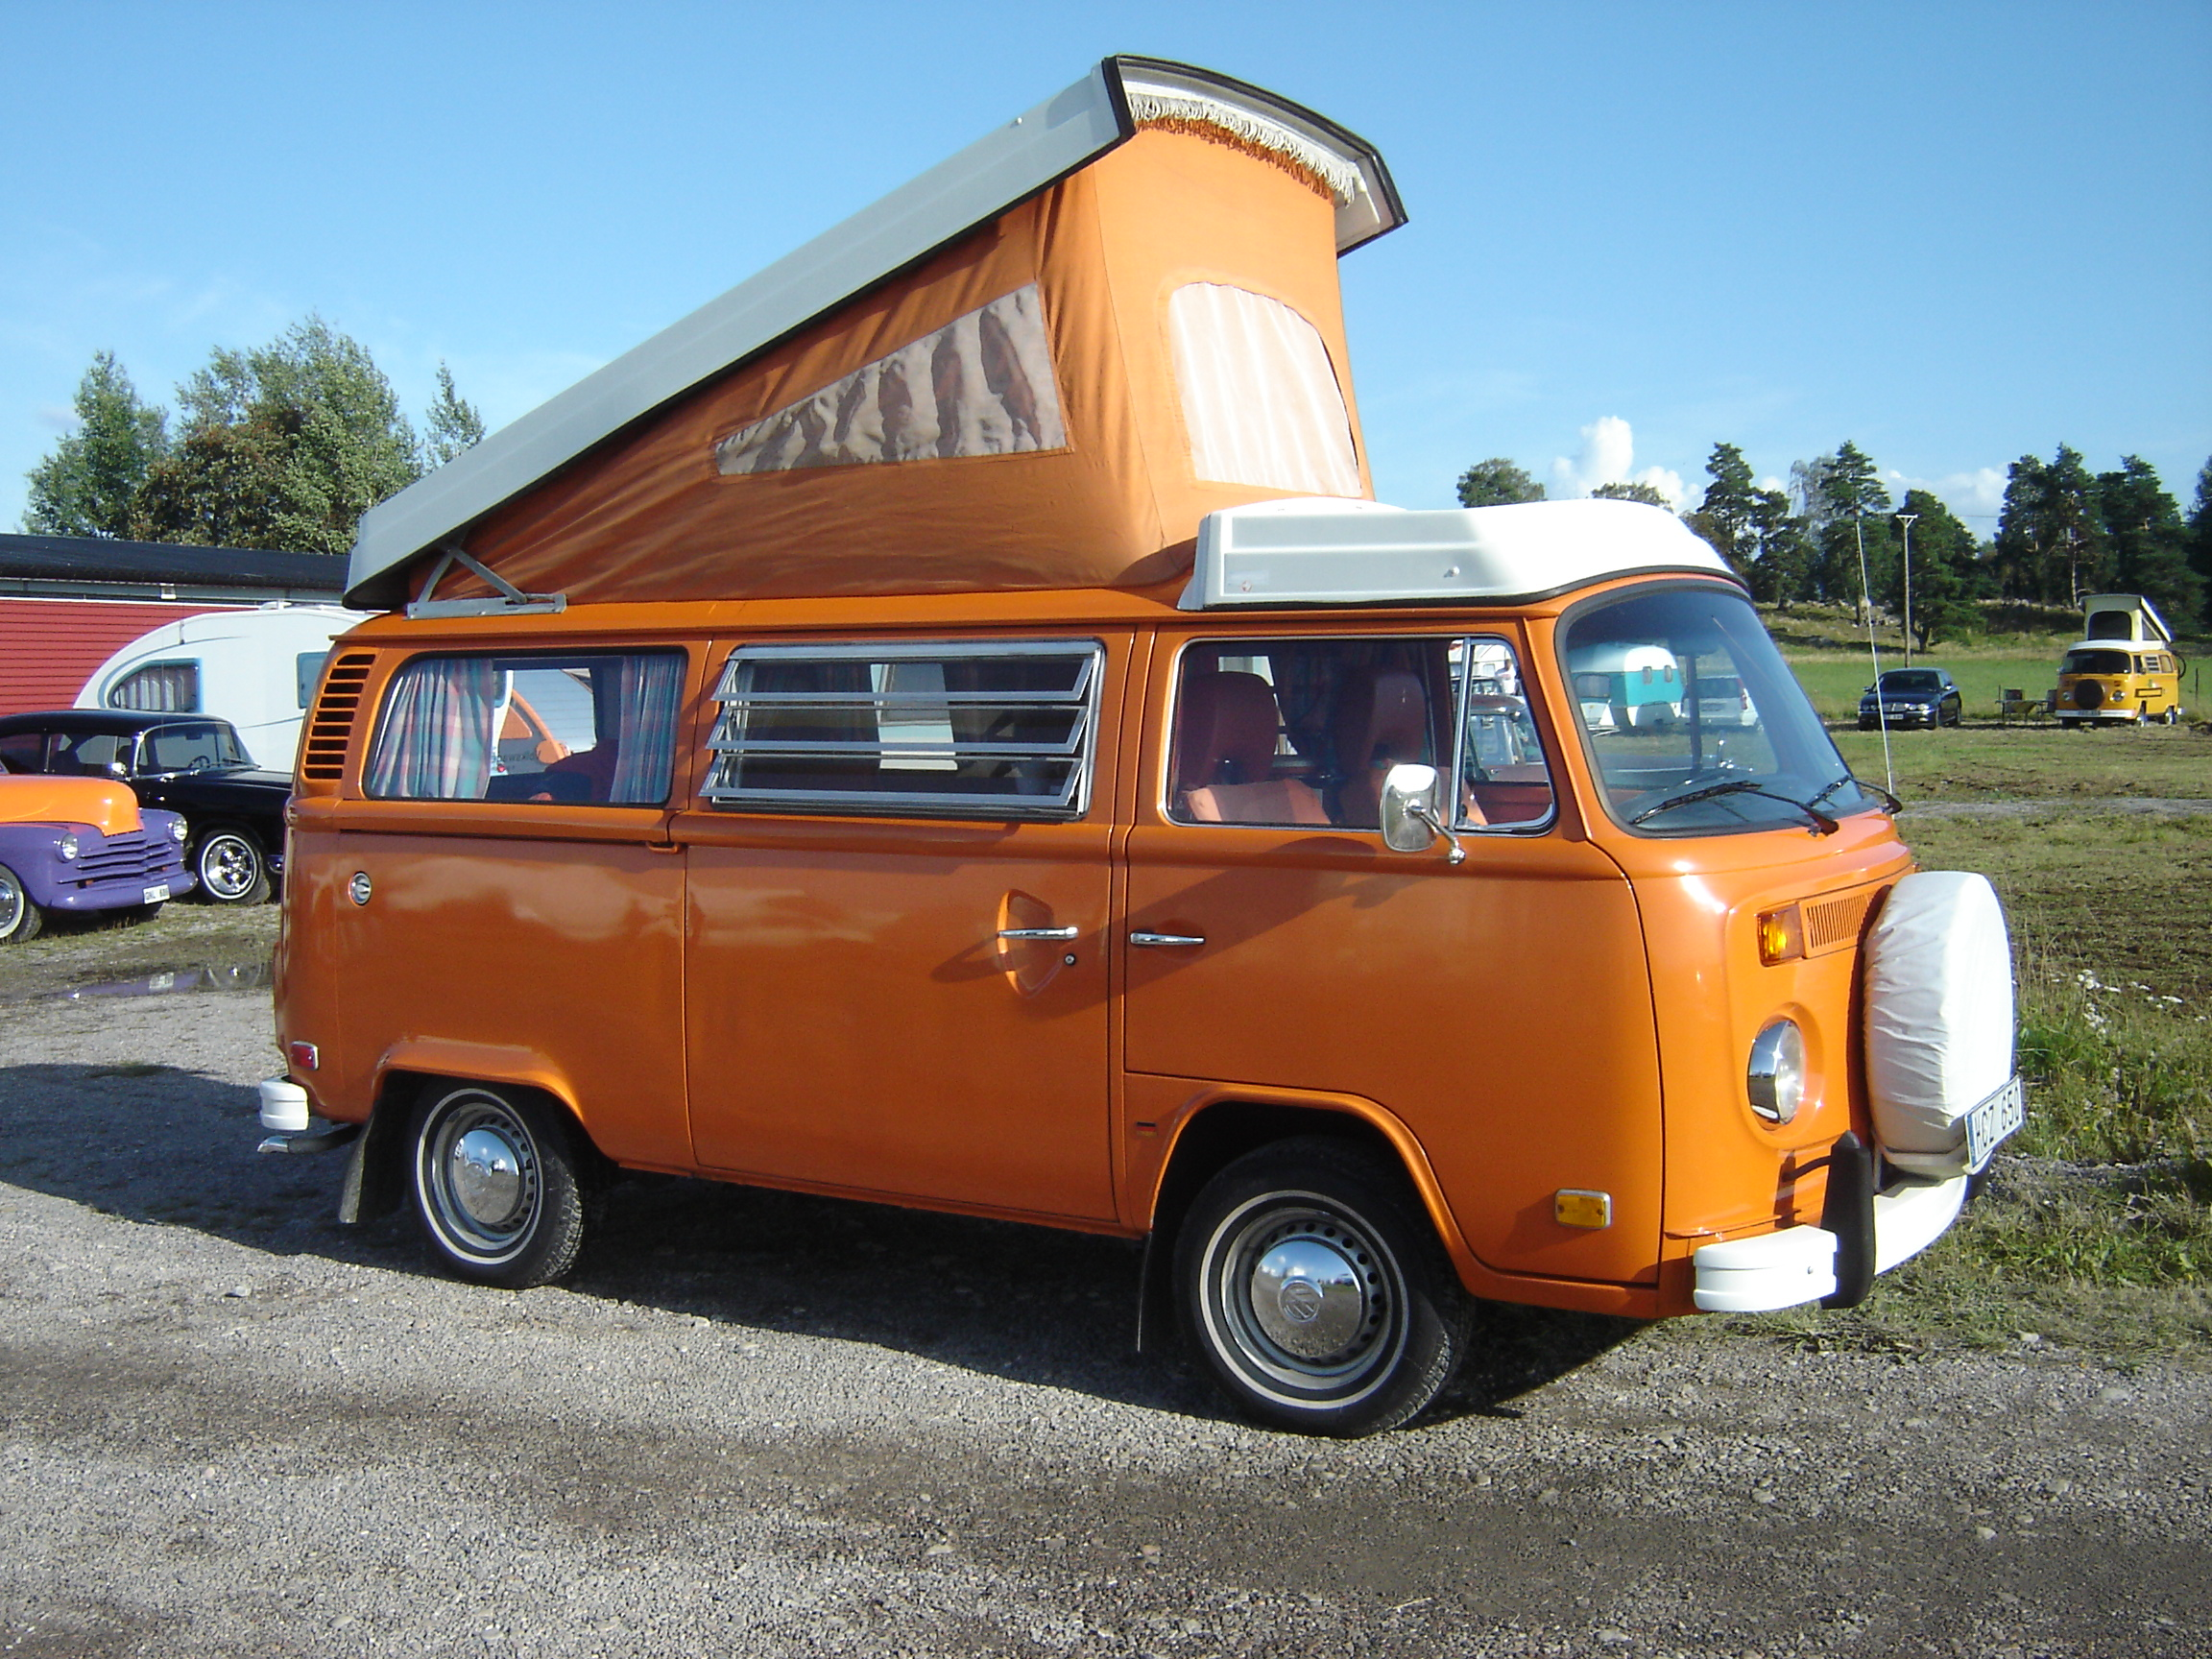 camper bus dorothy known a the conversion as little plight volkswagen of riviera page